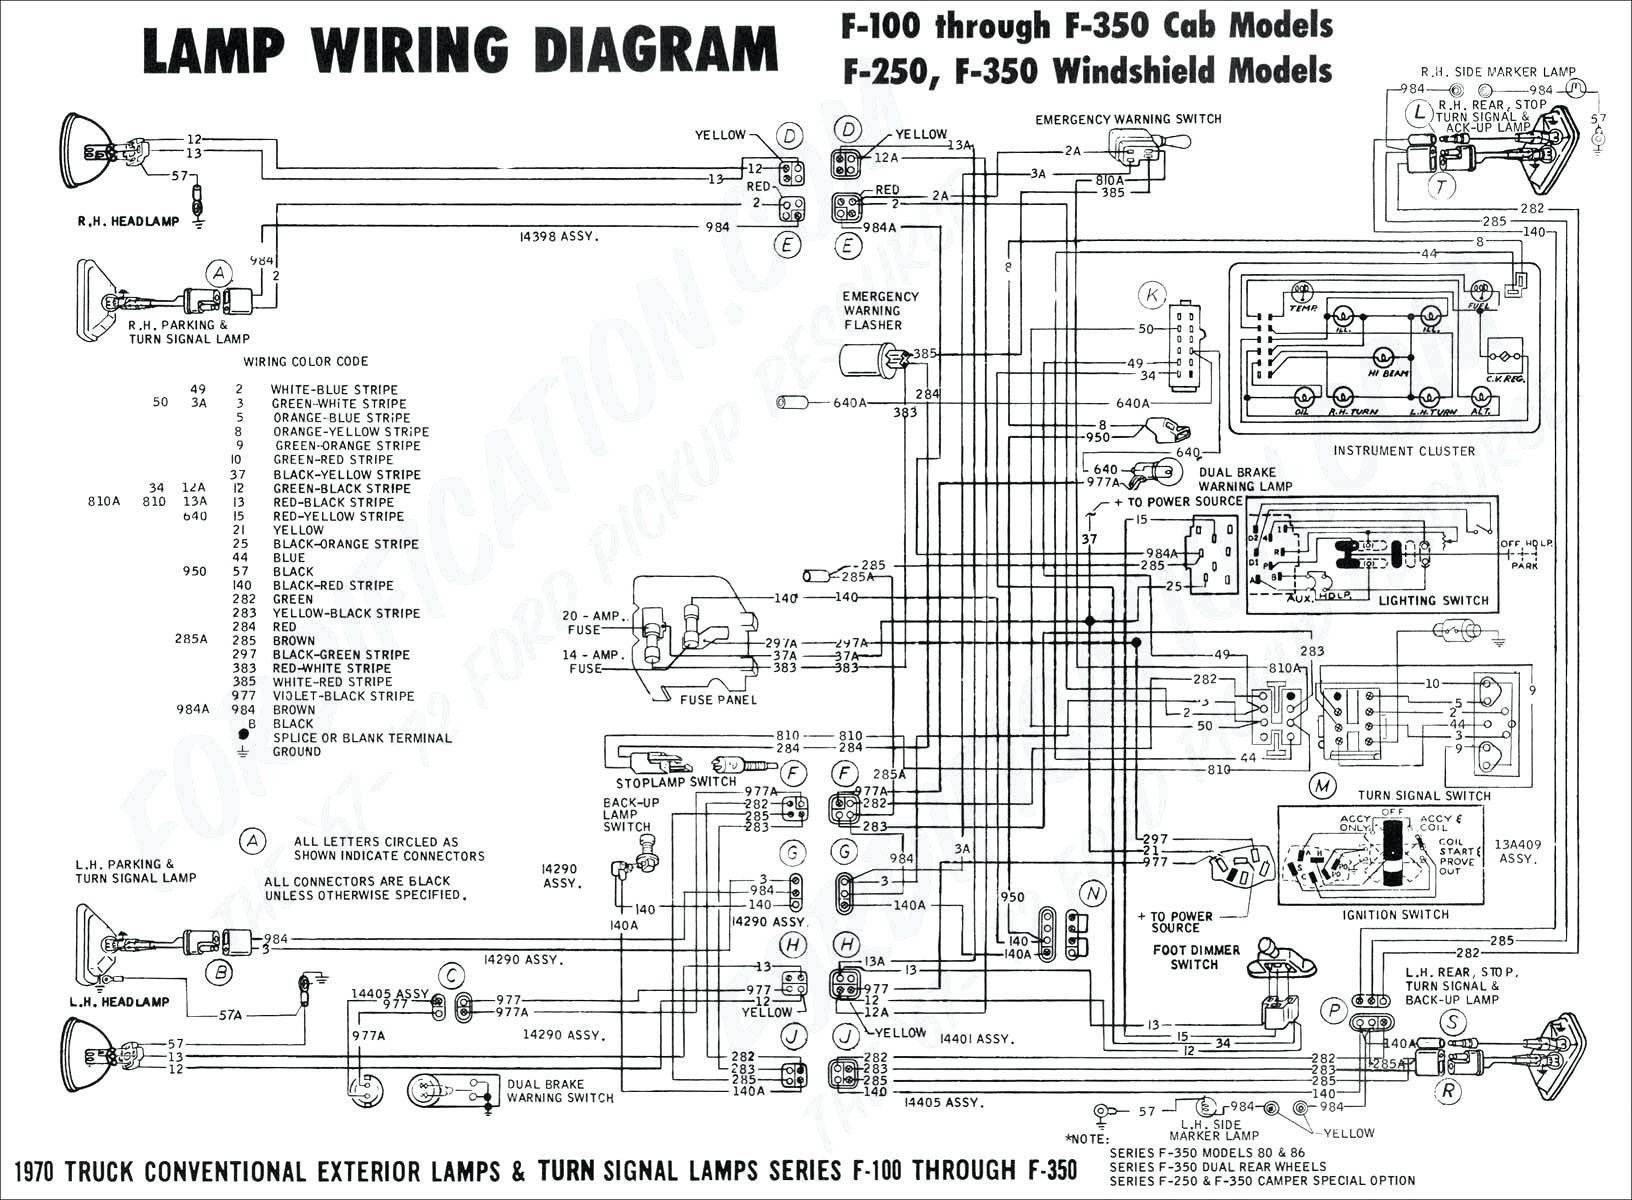 Unique 1999 Dodge Ram 1500 Trailer Wiring Diagram Diagram Diagramsample Diagramtemplate Electrical Wiring Diagram Electrical Diagram Trailer Wiring Diagram